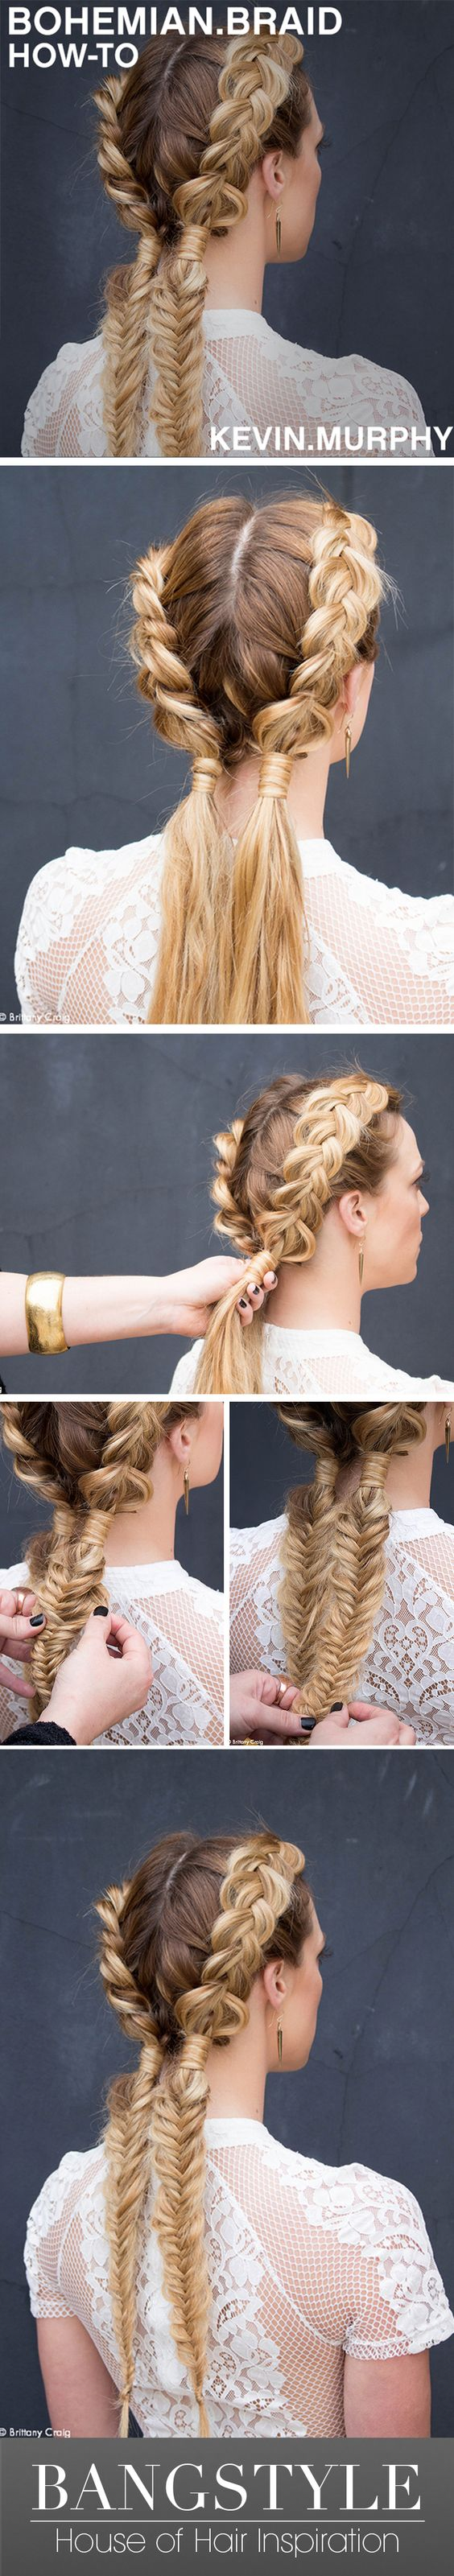 bohemian-braid via